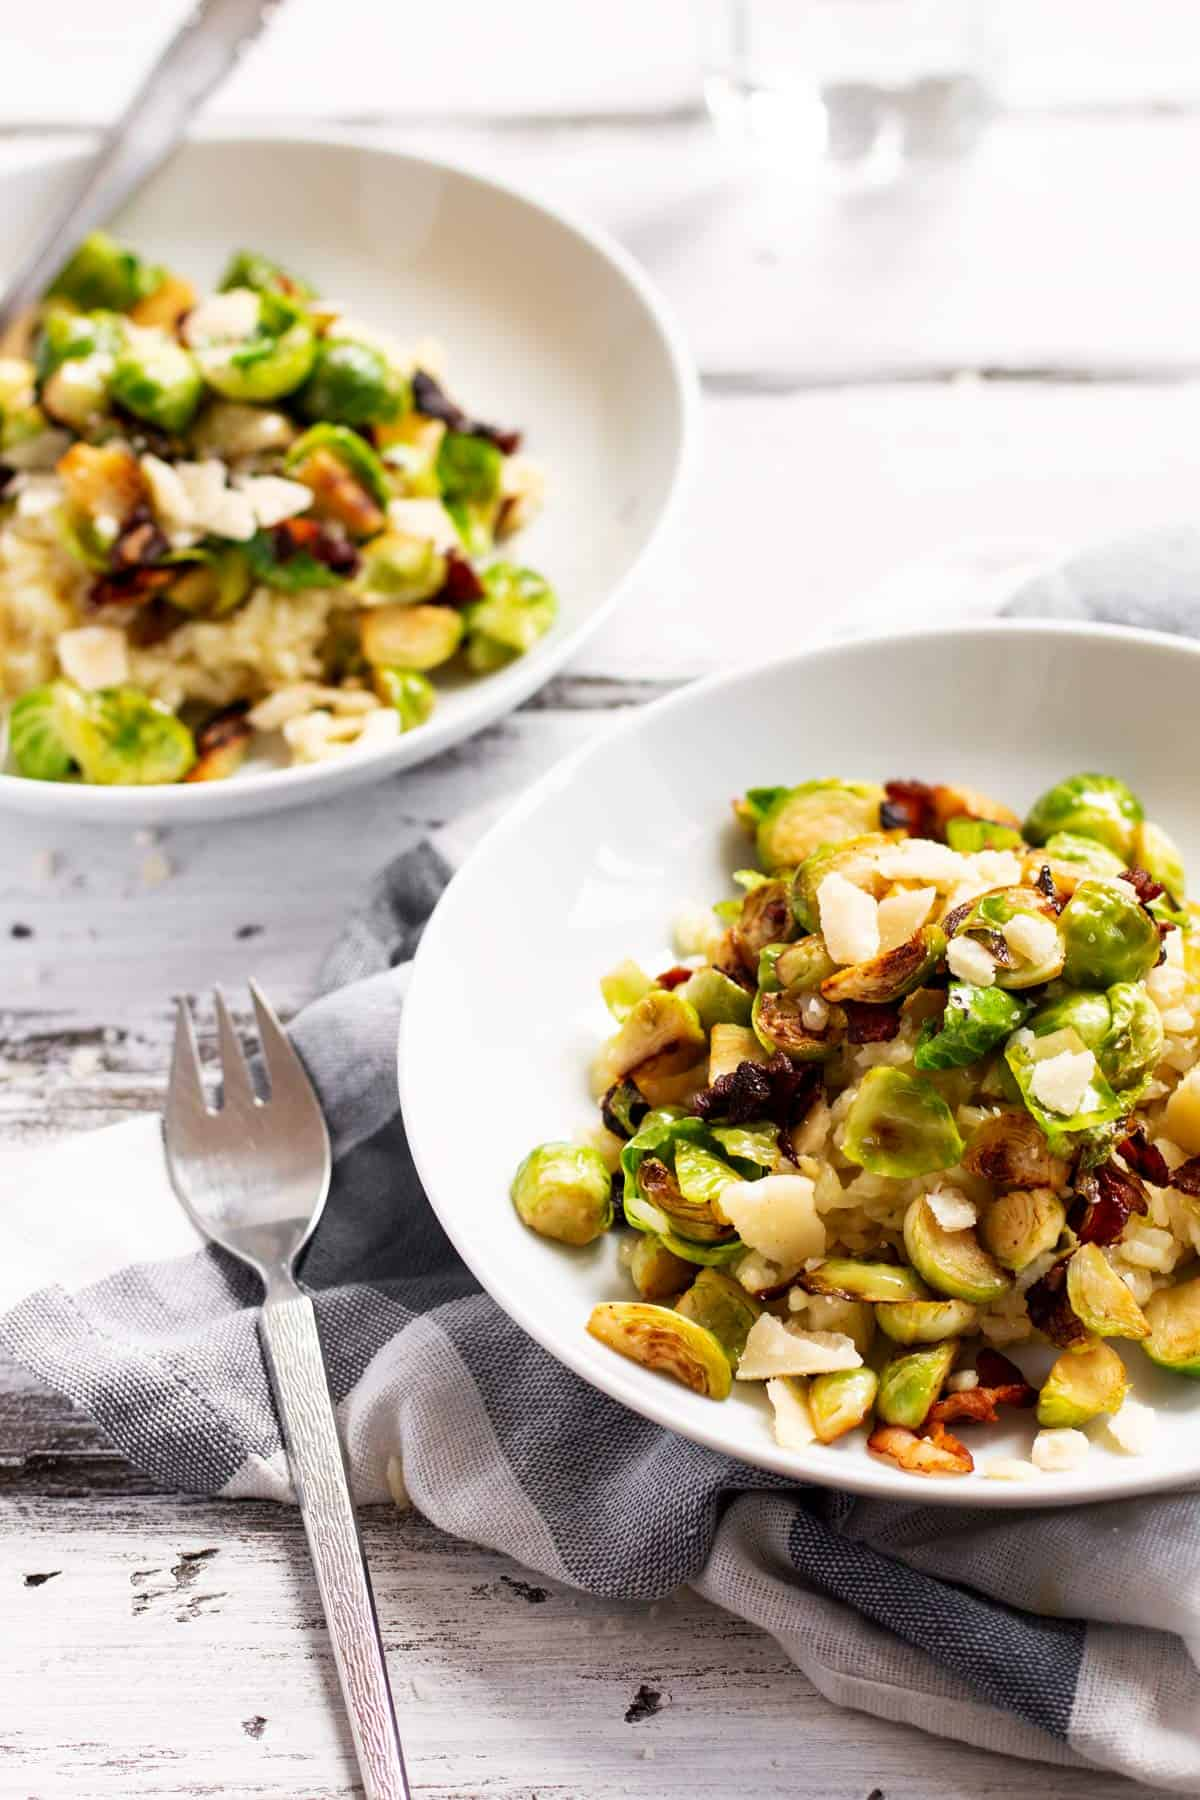 two plates filled with risotto with bacon and brussels sprouts